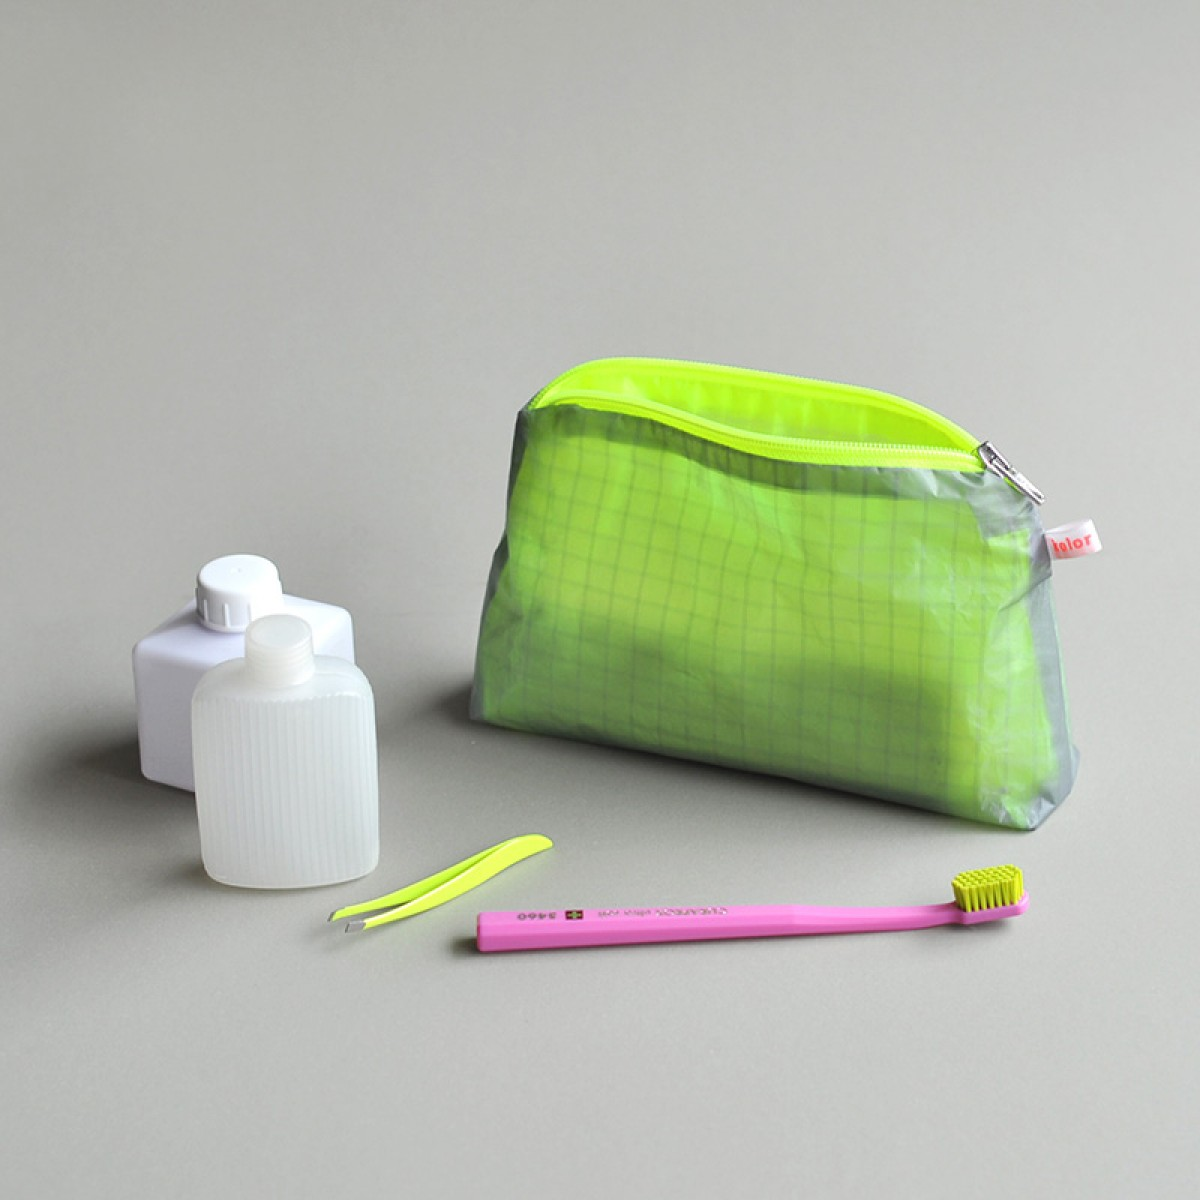 kolor magic pouch with zipper S / Kulturbeutel klein